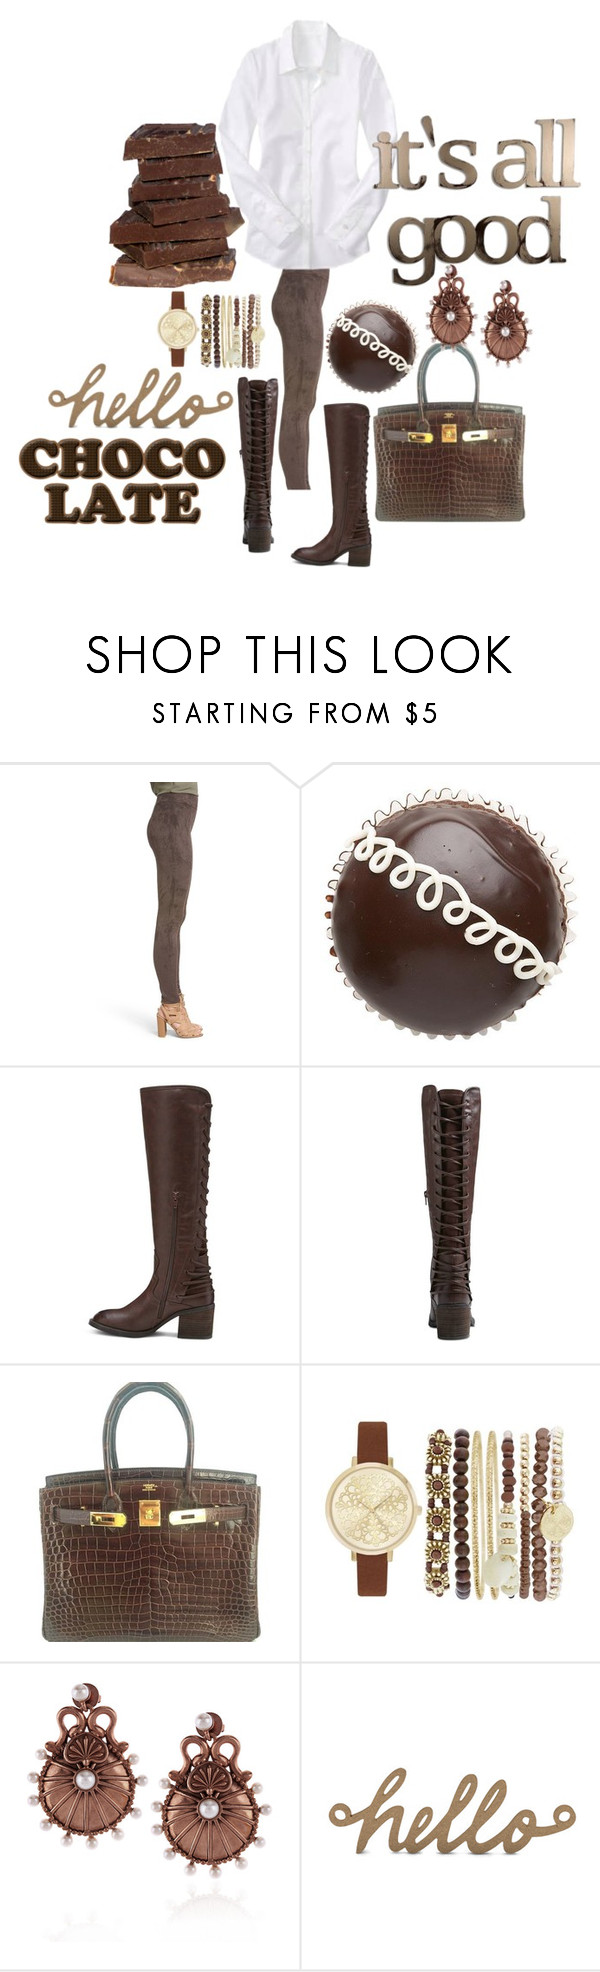 """""""Chocolate"""" by michelle858 ❤ liked on Polyvore featuring Sun & Shadow, Betseyville, Hermès, Jessica Carlyle, Sophia Kokosalaki and Letter2Word"""